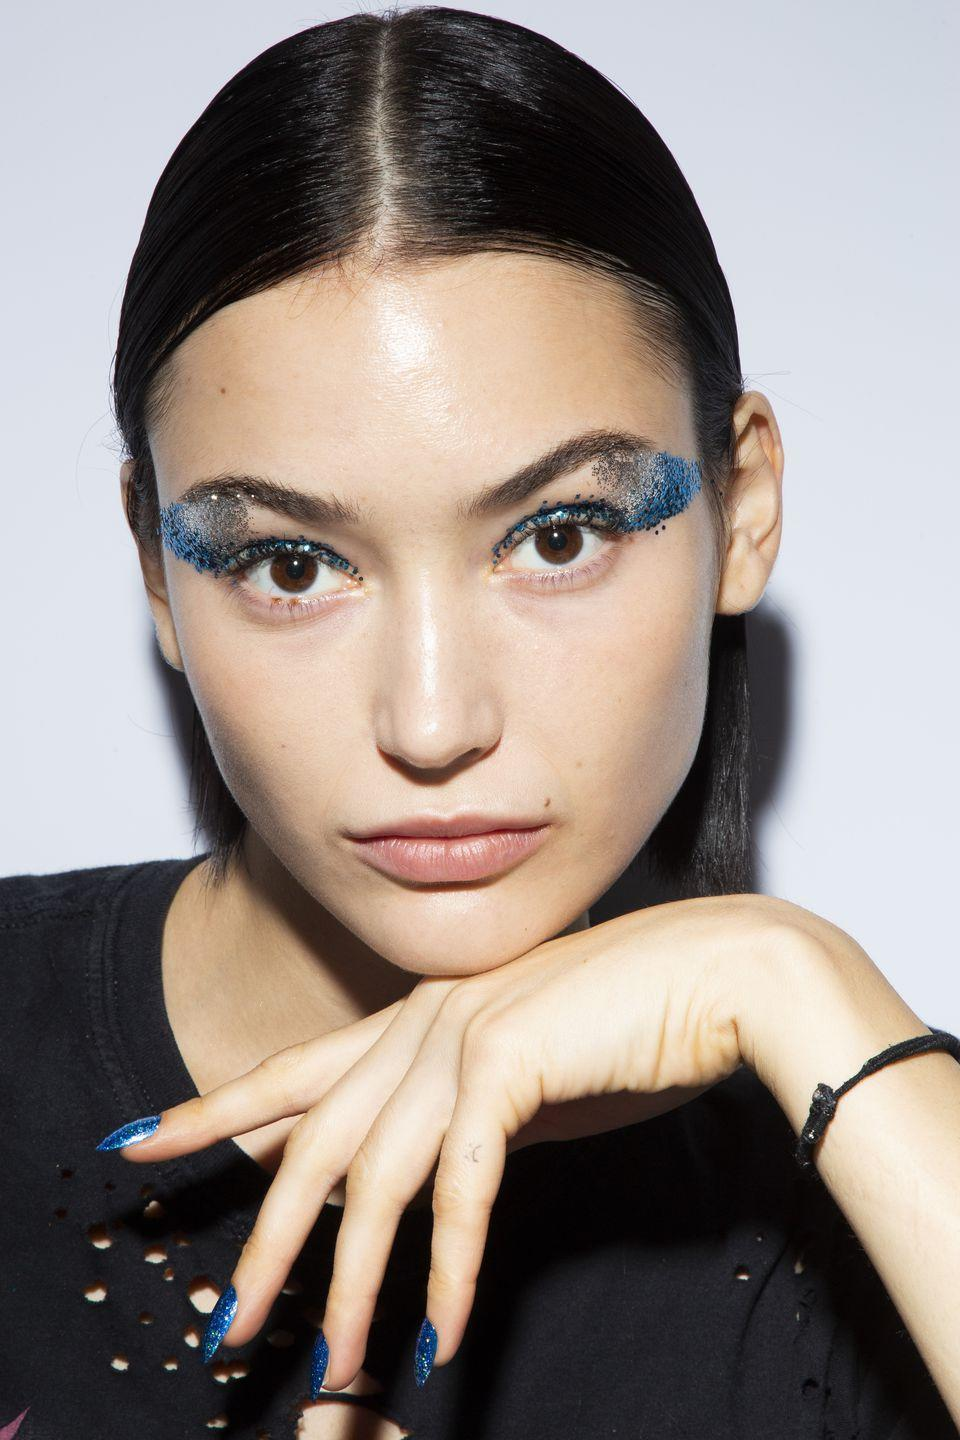 <p>The glitter trend may never die. Case in point: Tadashi Shoji's galaxy-inspired glittery eyes and nails.</p>